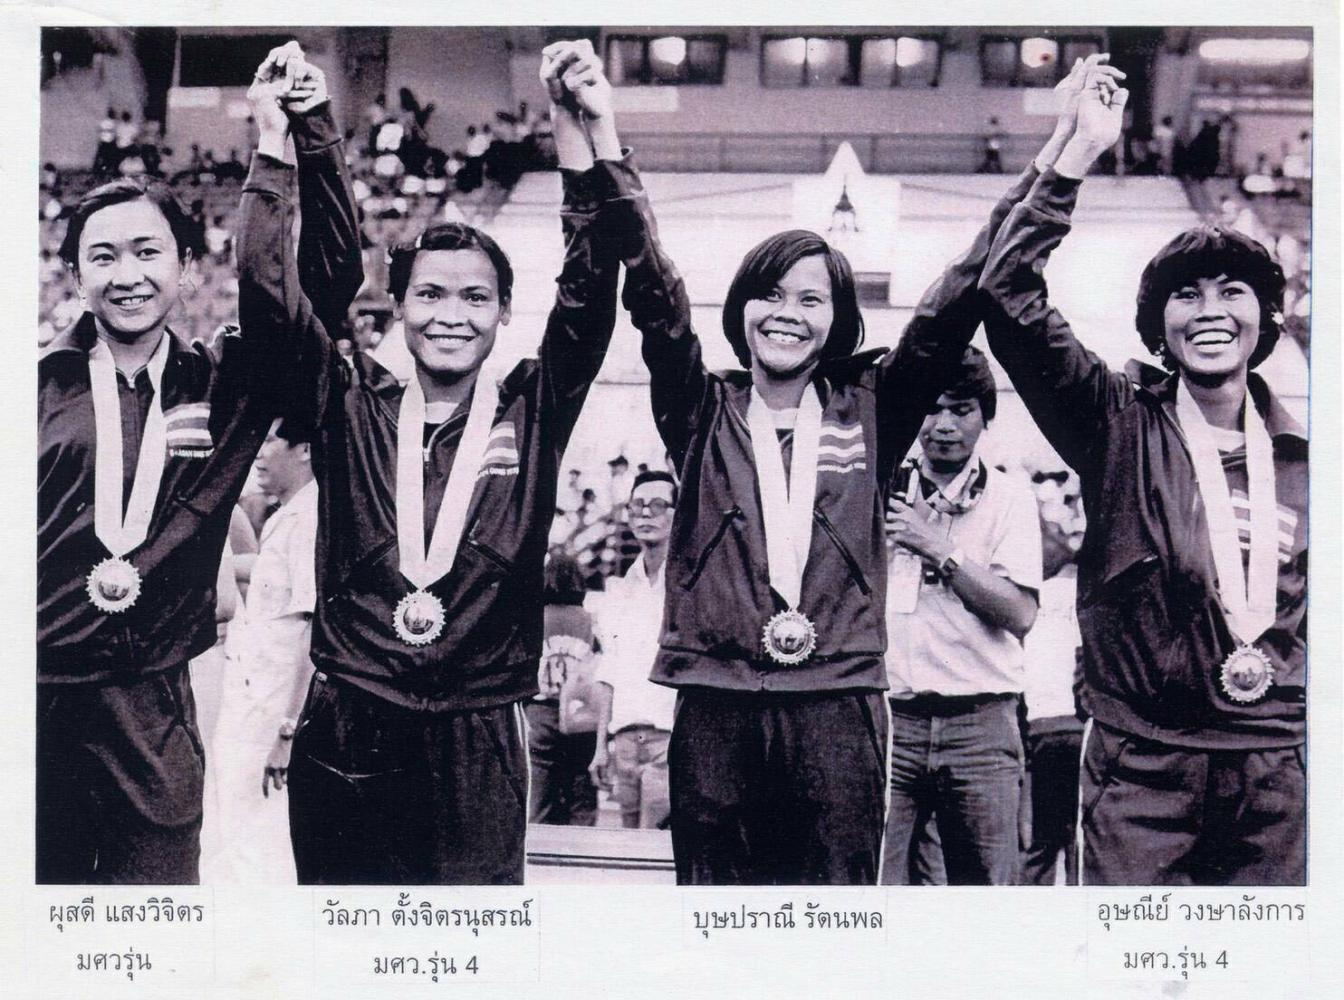 Thai sprinters, from left, Pusadee Sangvijit, Wallapa Pinij, Buspranee Ratanapol and Usanee Laopinkarn with their 4x100m gold medals at the 1978 Asian Games.